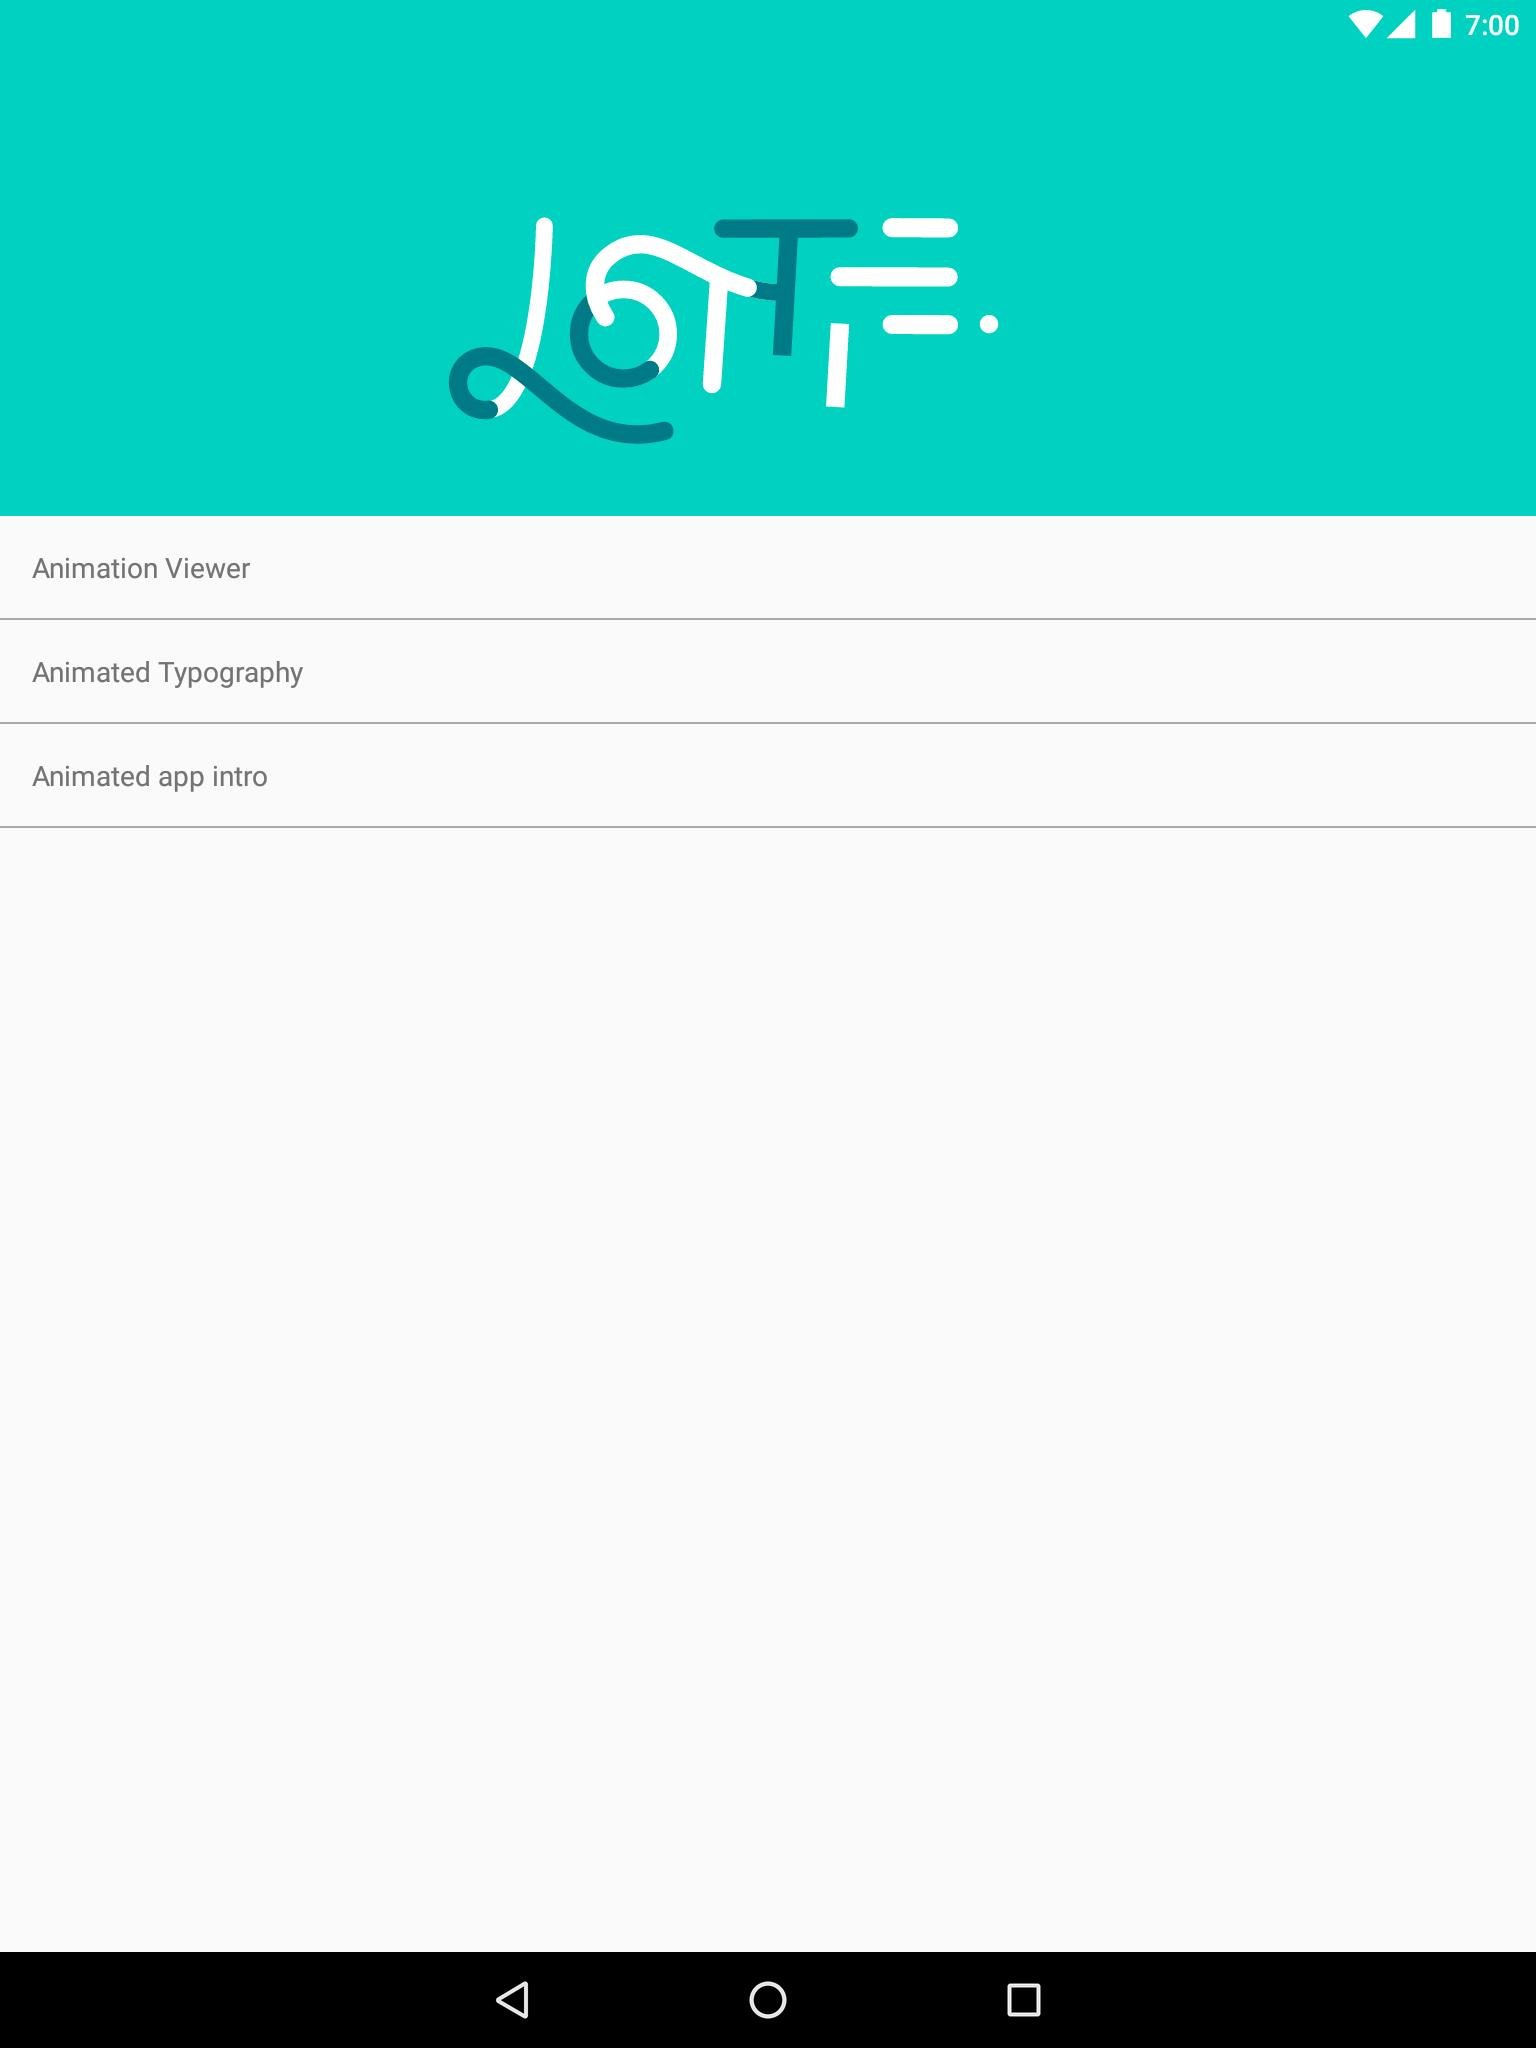 Lottie for Android - APK Download